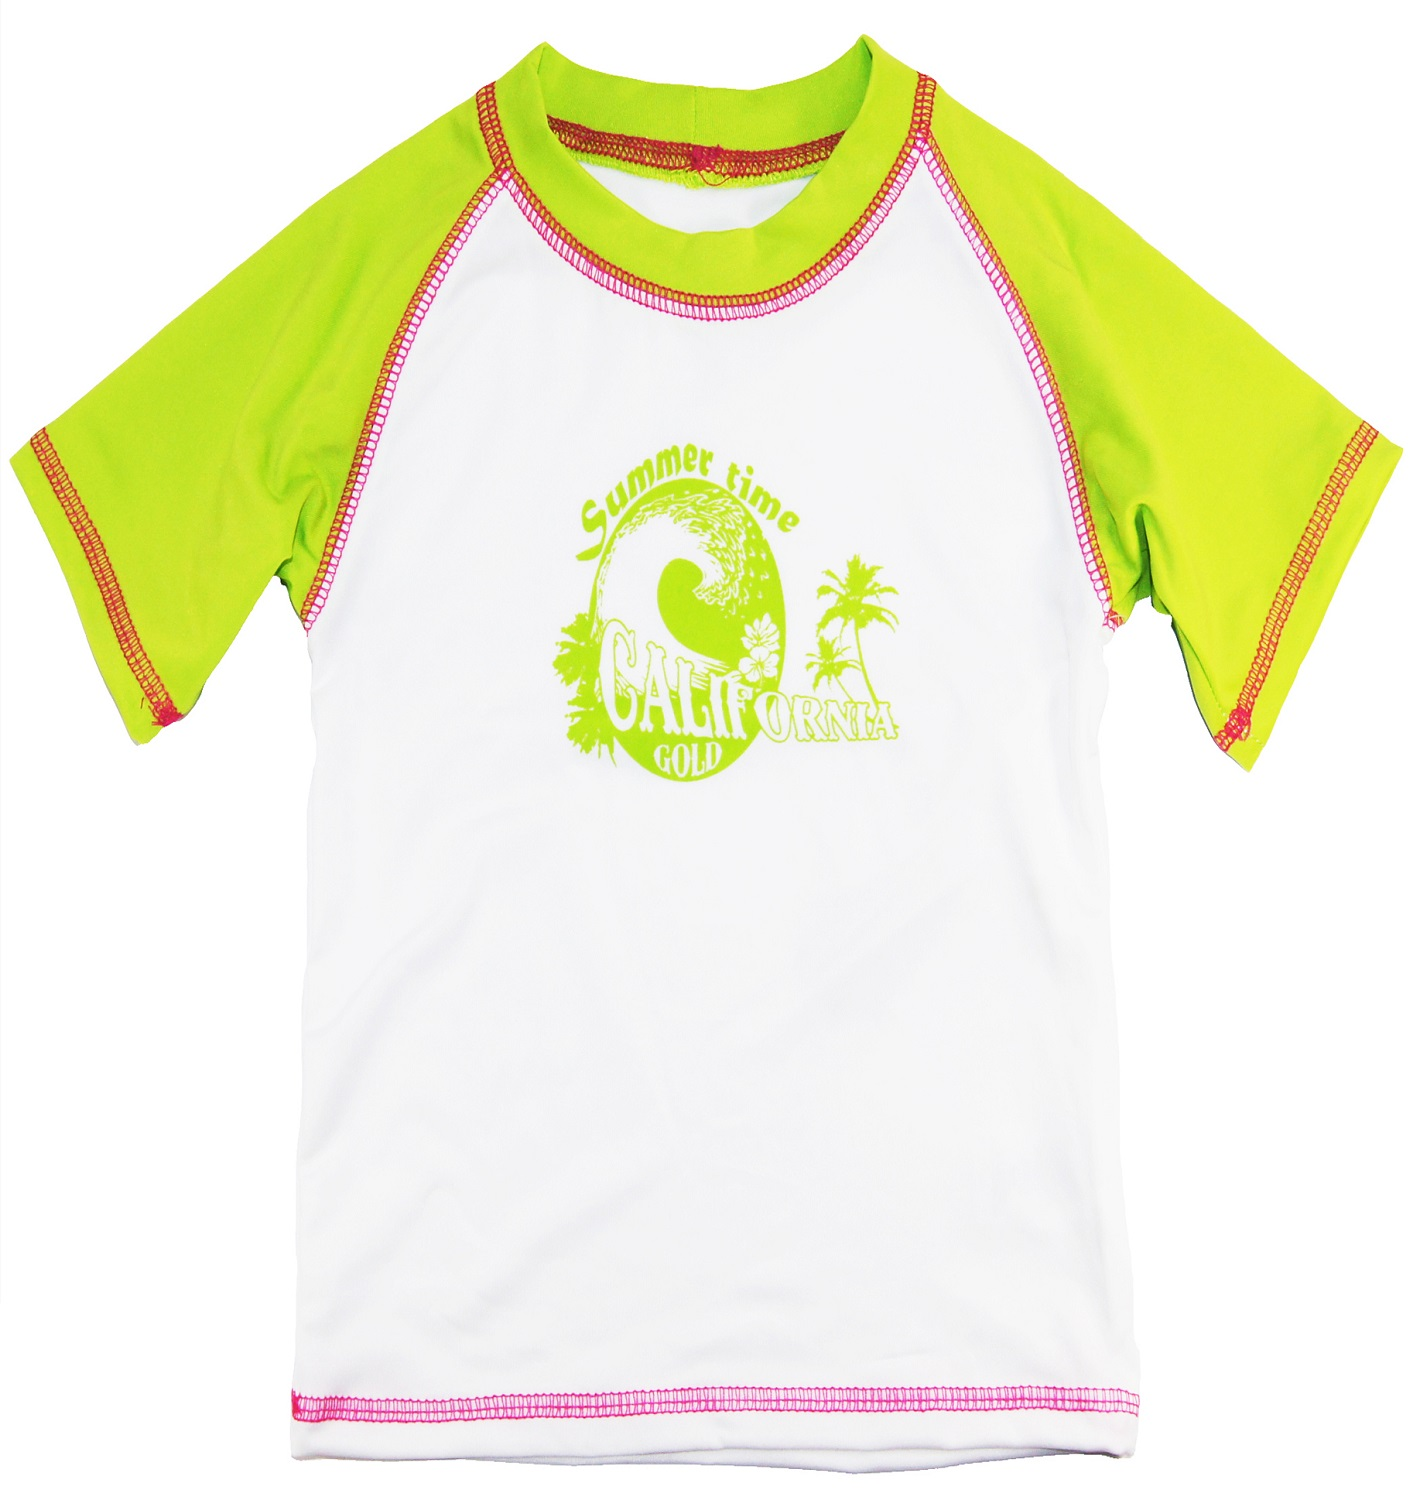 Pink Platinum Girls Short Sleeve Surf Rashguard Top Beach Swim Tee Shirt